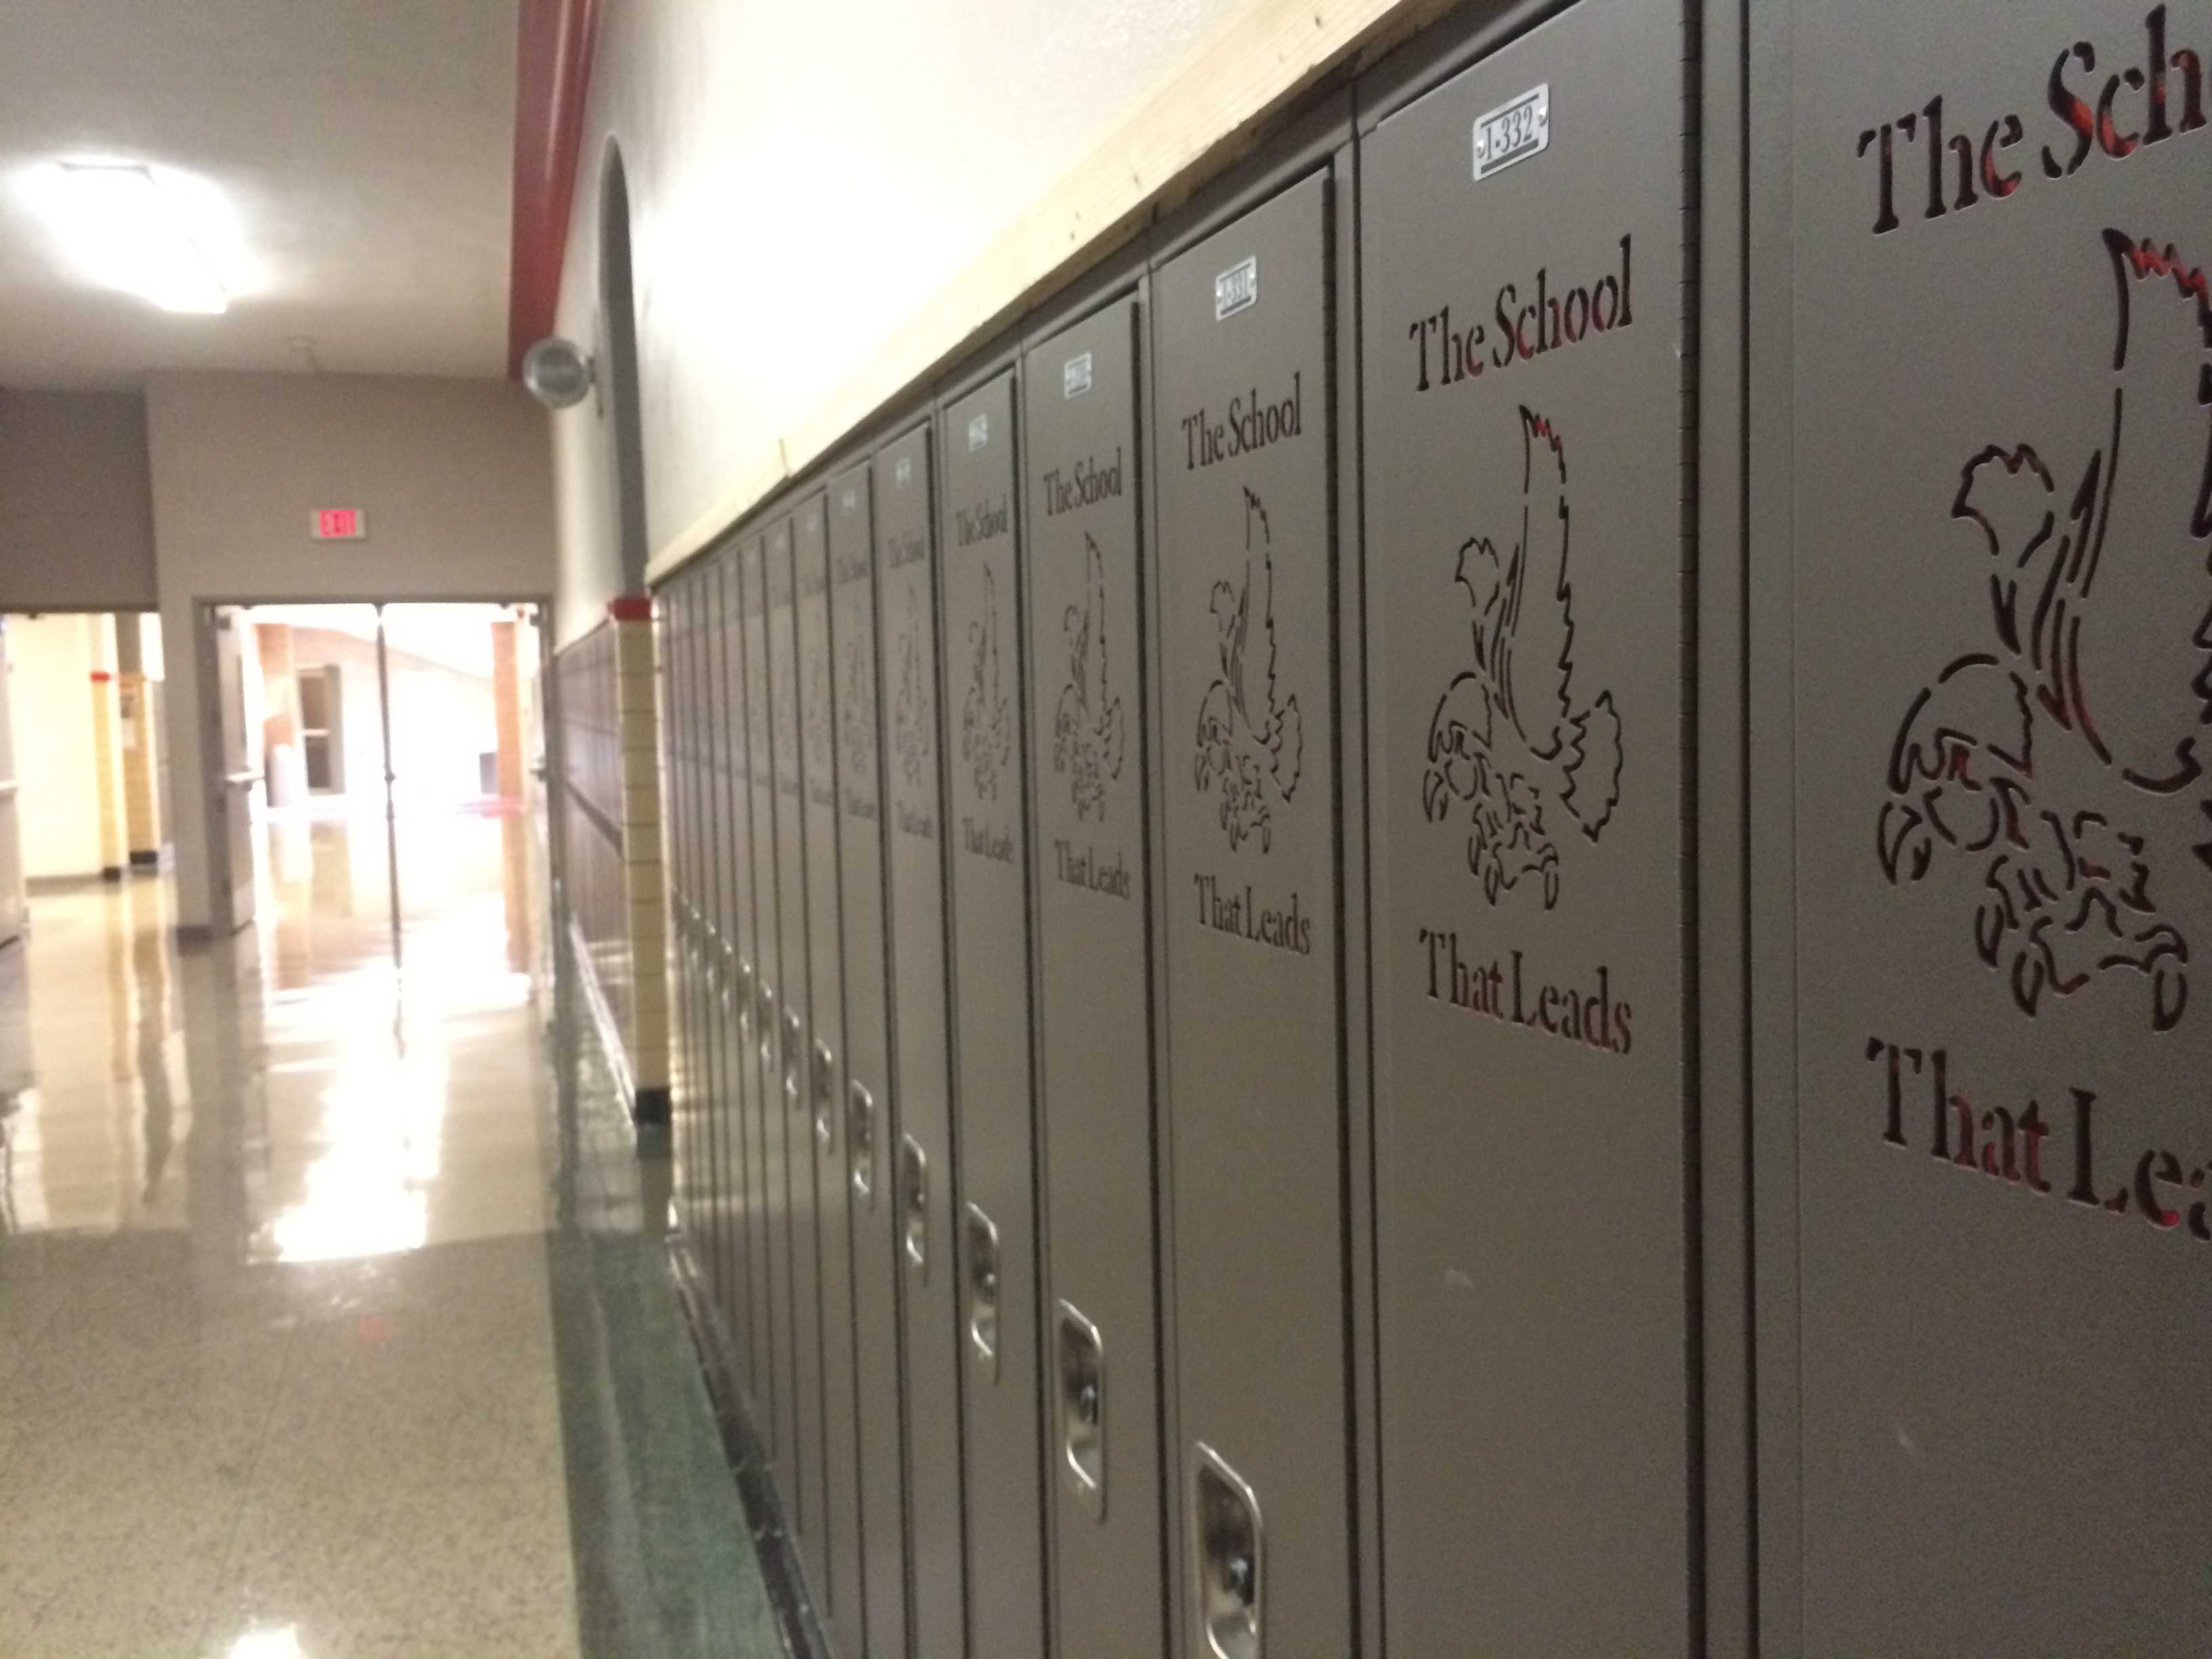 New lockers, chosen by Scott Jesperson, Assistant Principal, have been installed on the first floor